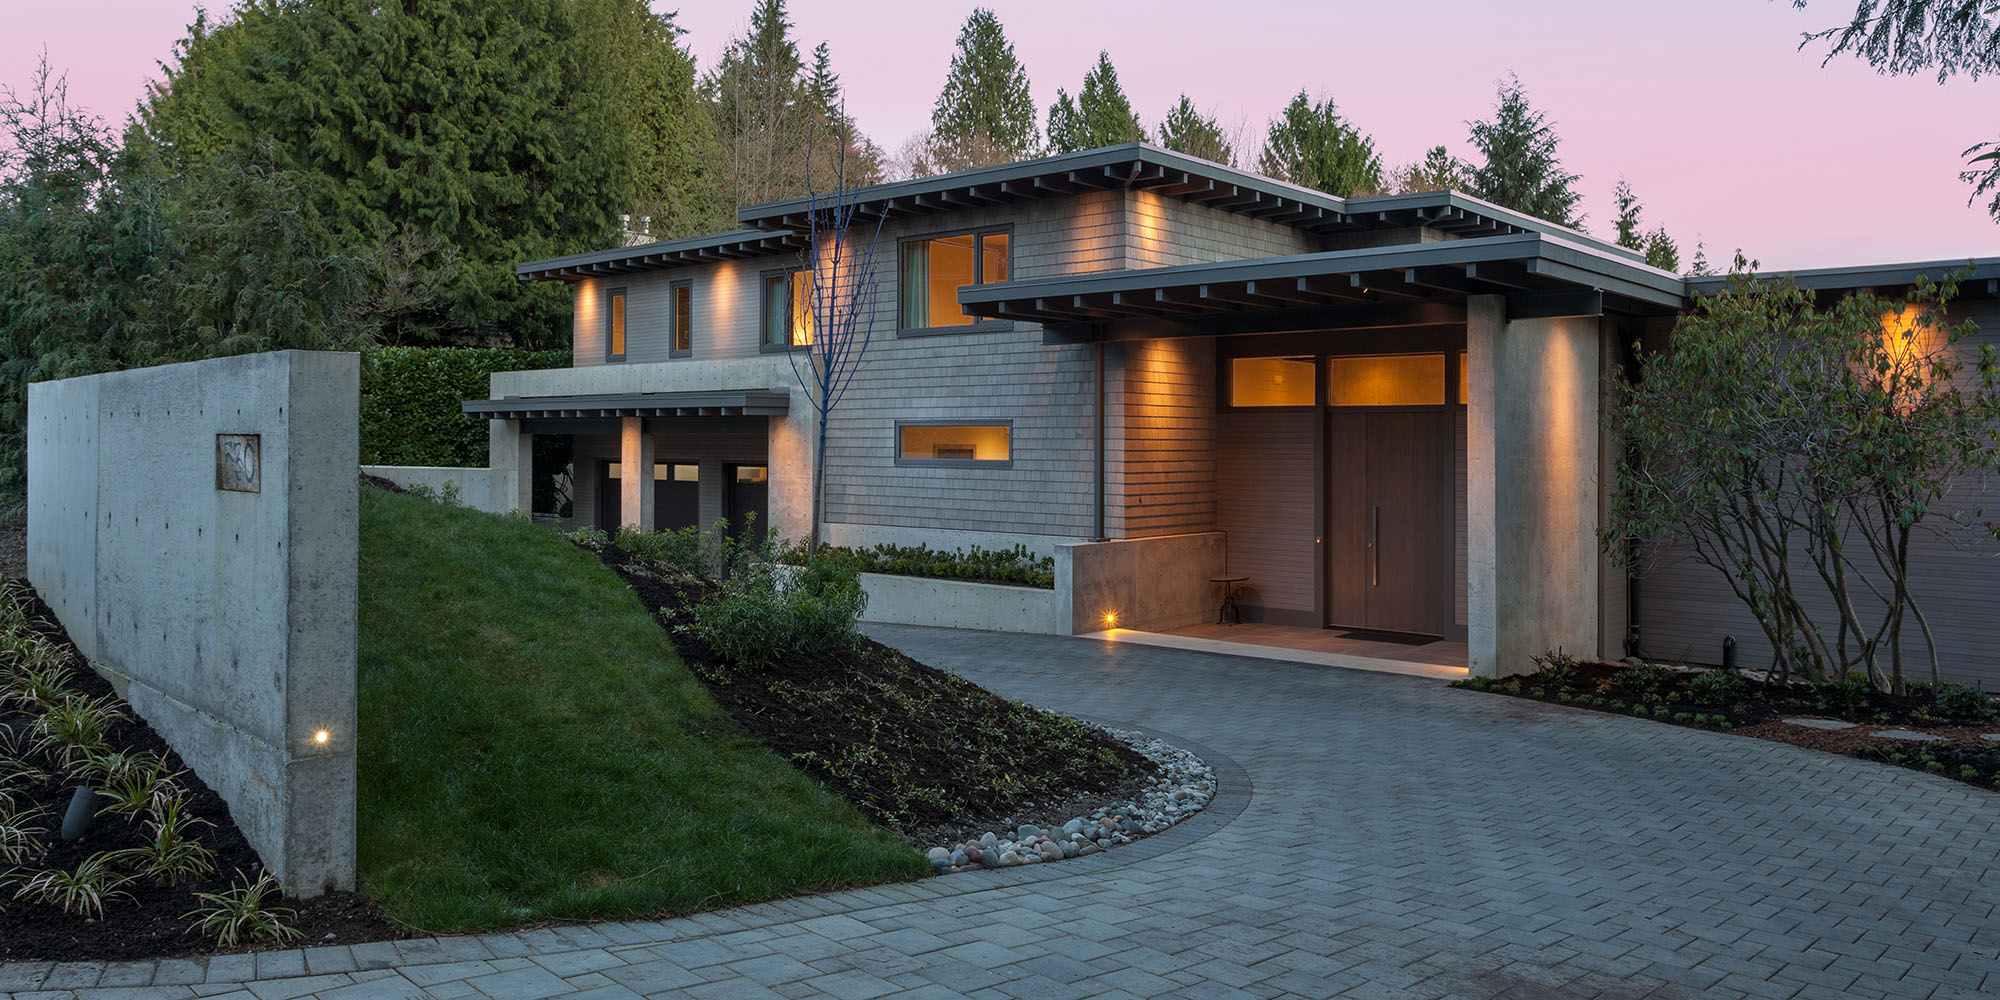 4th annual vancouver modern architecture design society for Vancouver parade of homes